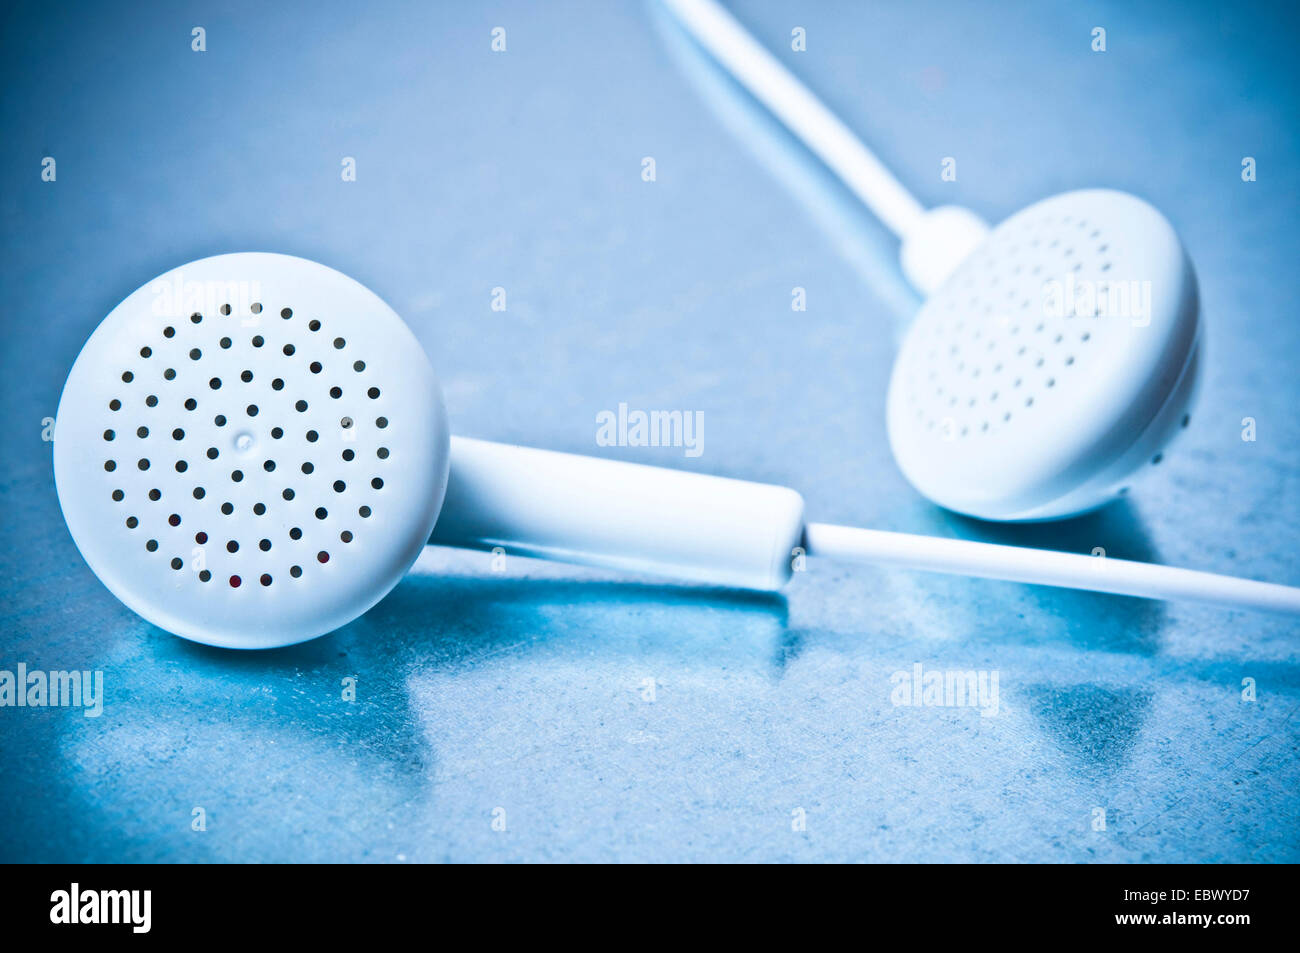 closeup of a pair of in ears headphones or earbuds - Stock Image